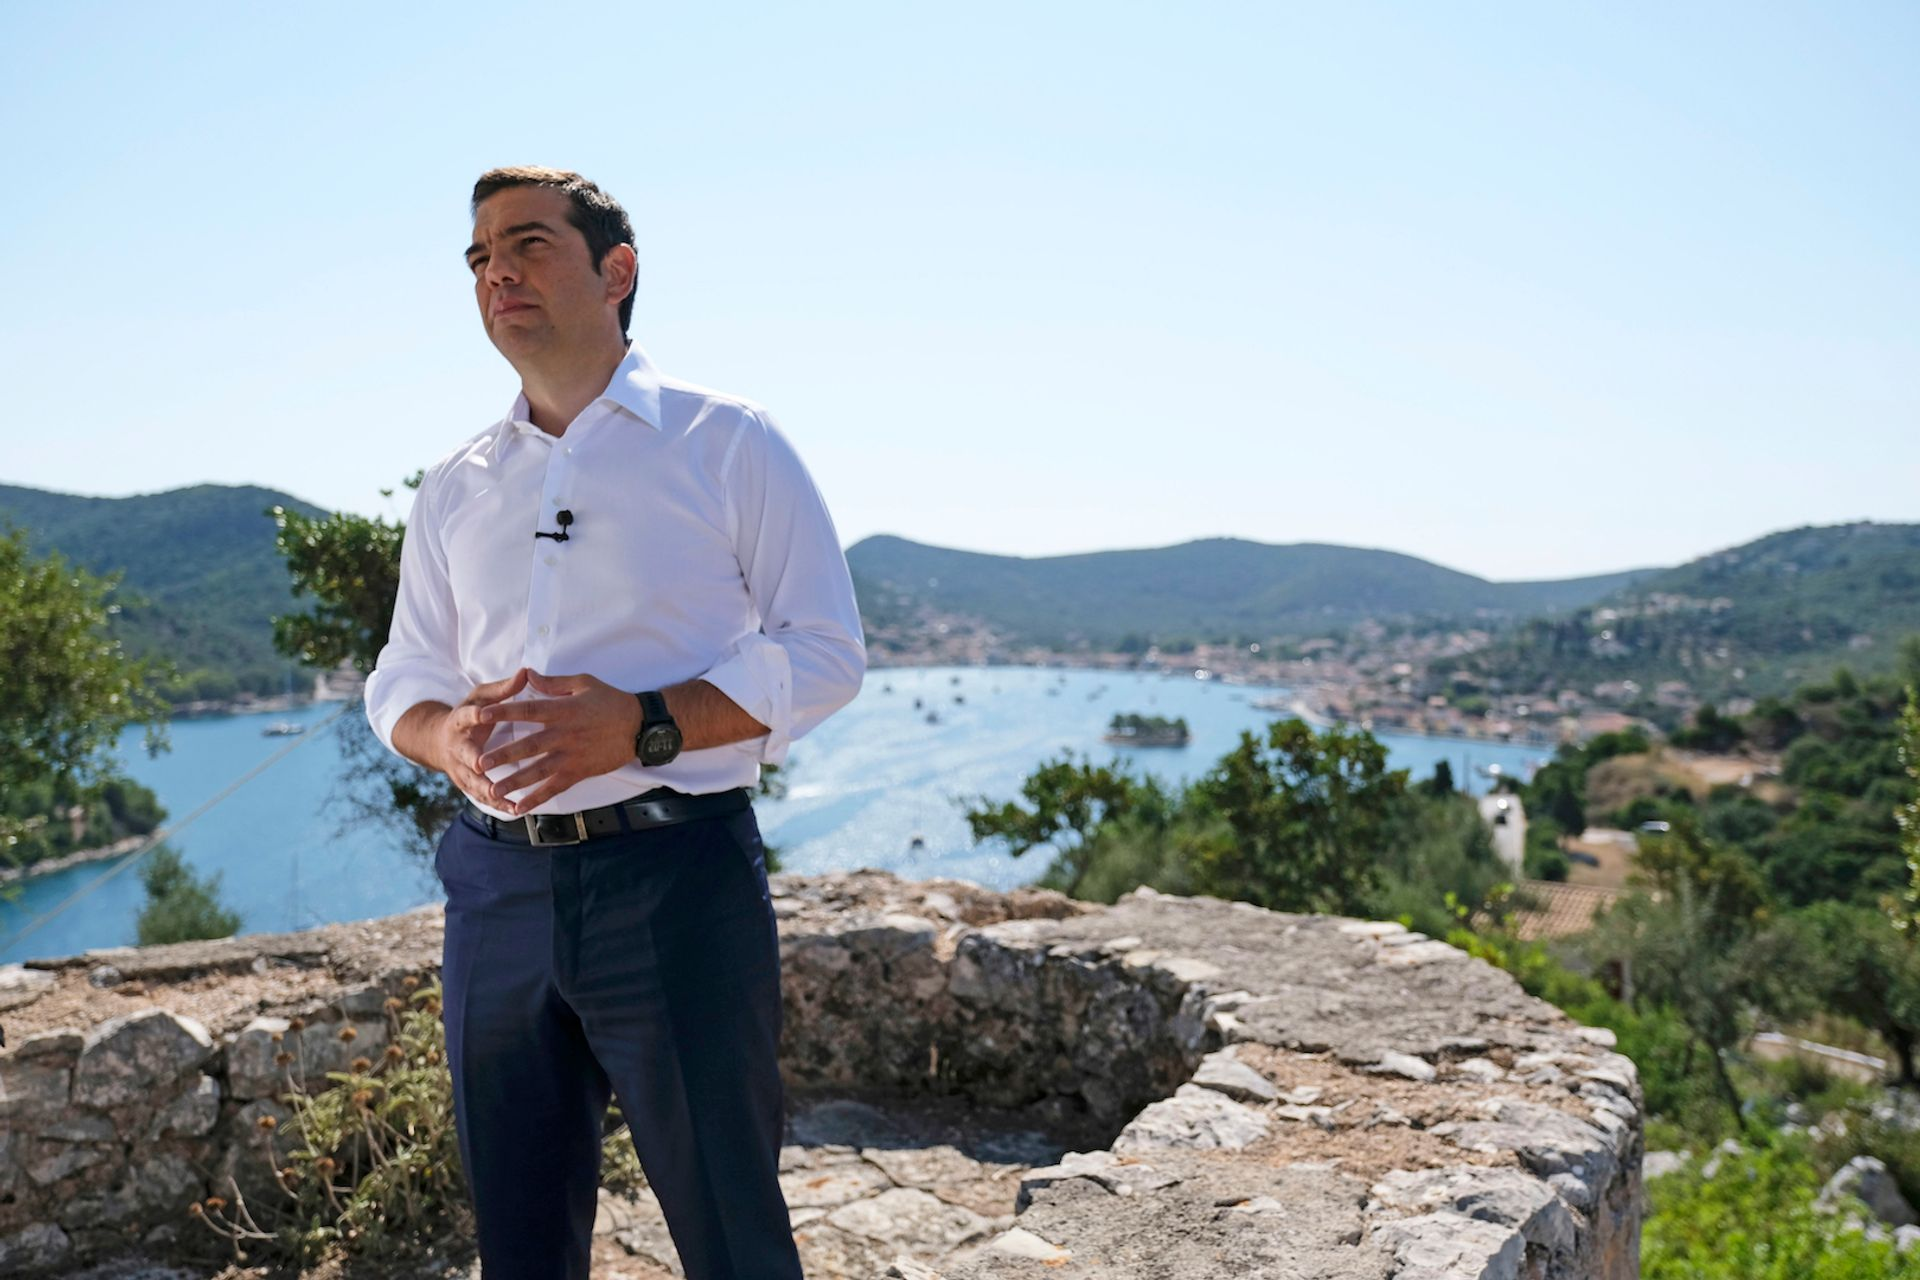 Prime Minister Alexis Tsipras stands on a hill in Ithaca overlooking the bay that the mythological hero Odysseus returned to after his ten-year voyage home Courtesy of the Greek government